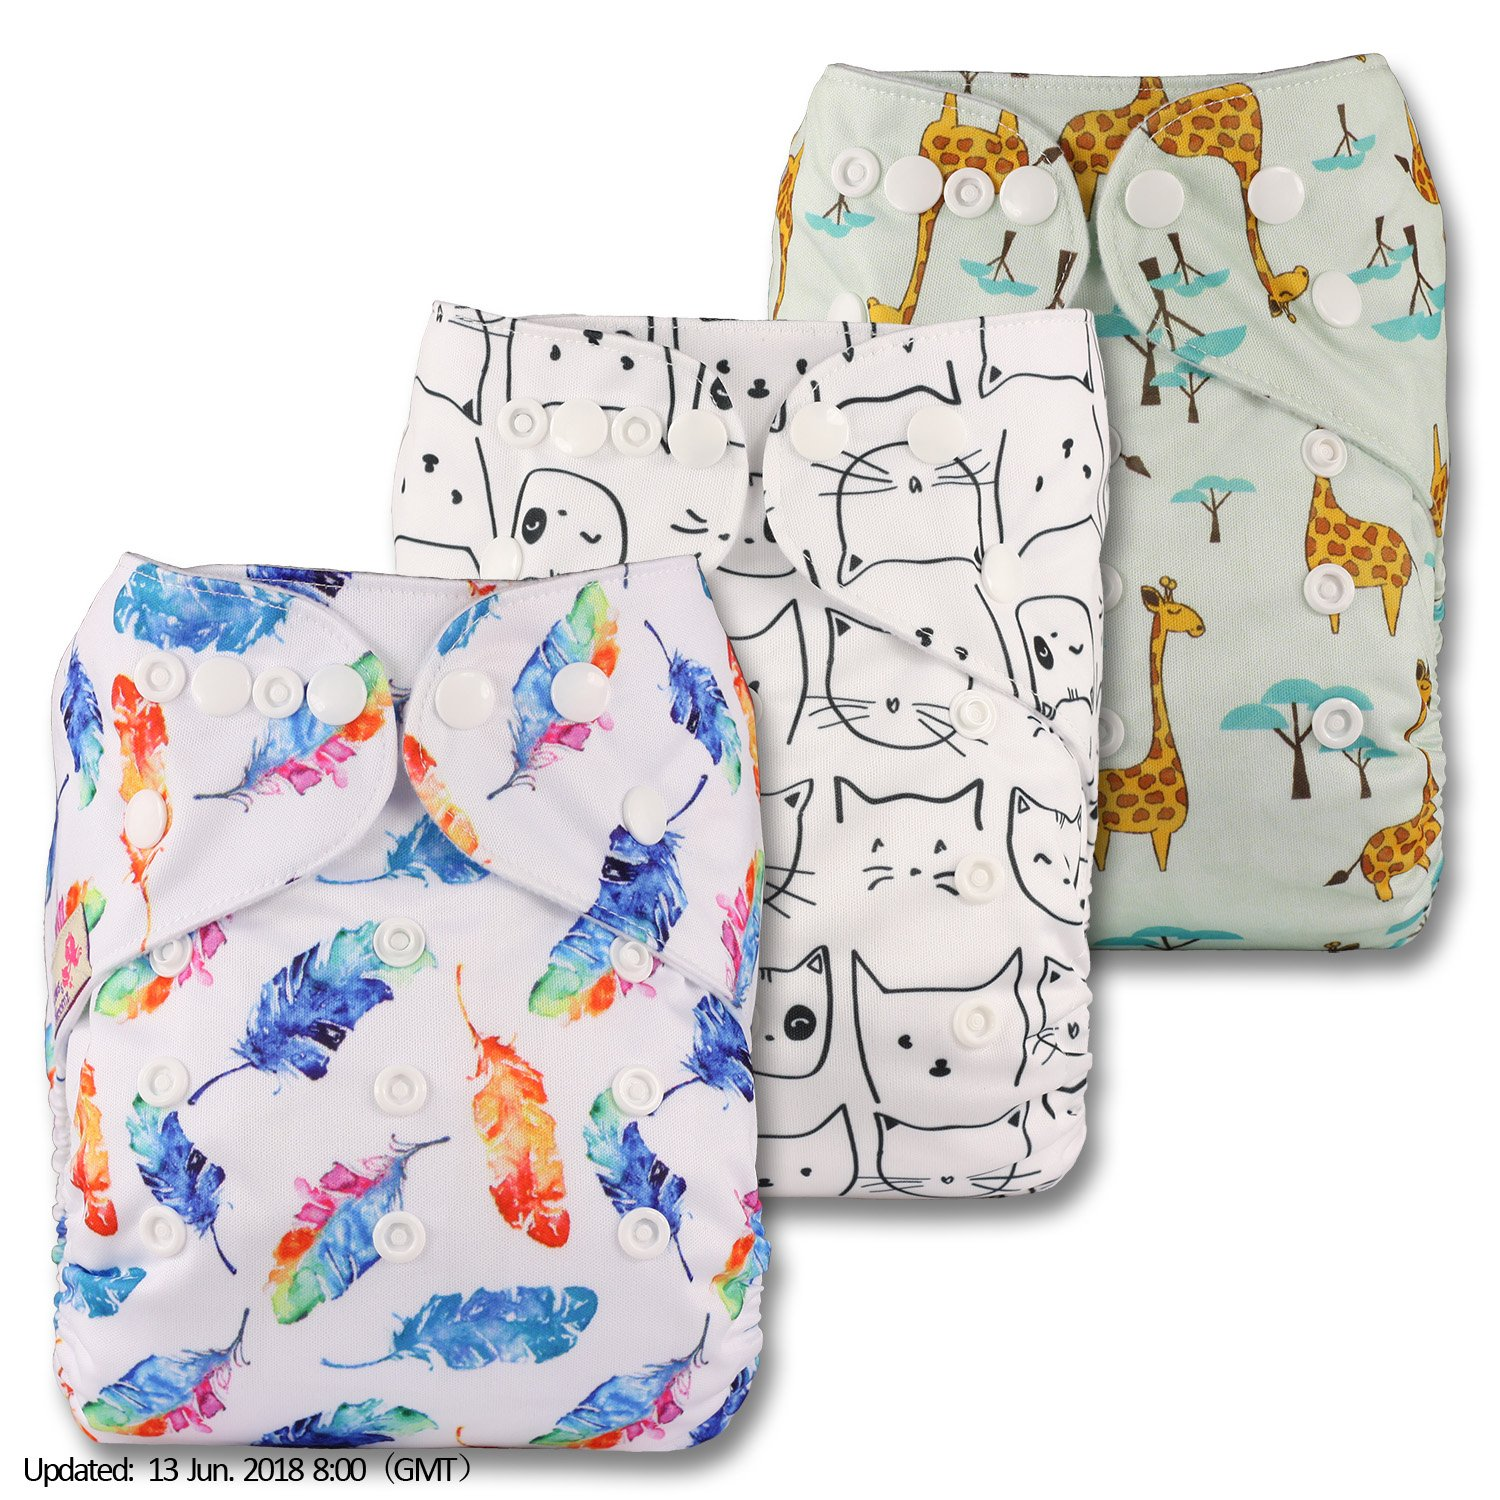 Reusable Pocket Cloth Nappy Littles /& Bloomz Set of 3 Fastener: Popper Patterns 307 with 3 Bamboo Inserts